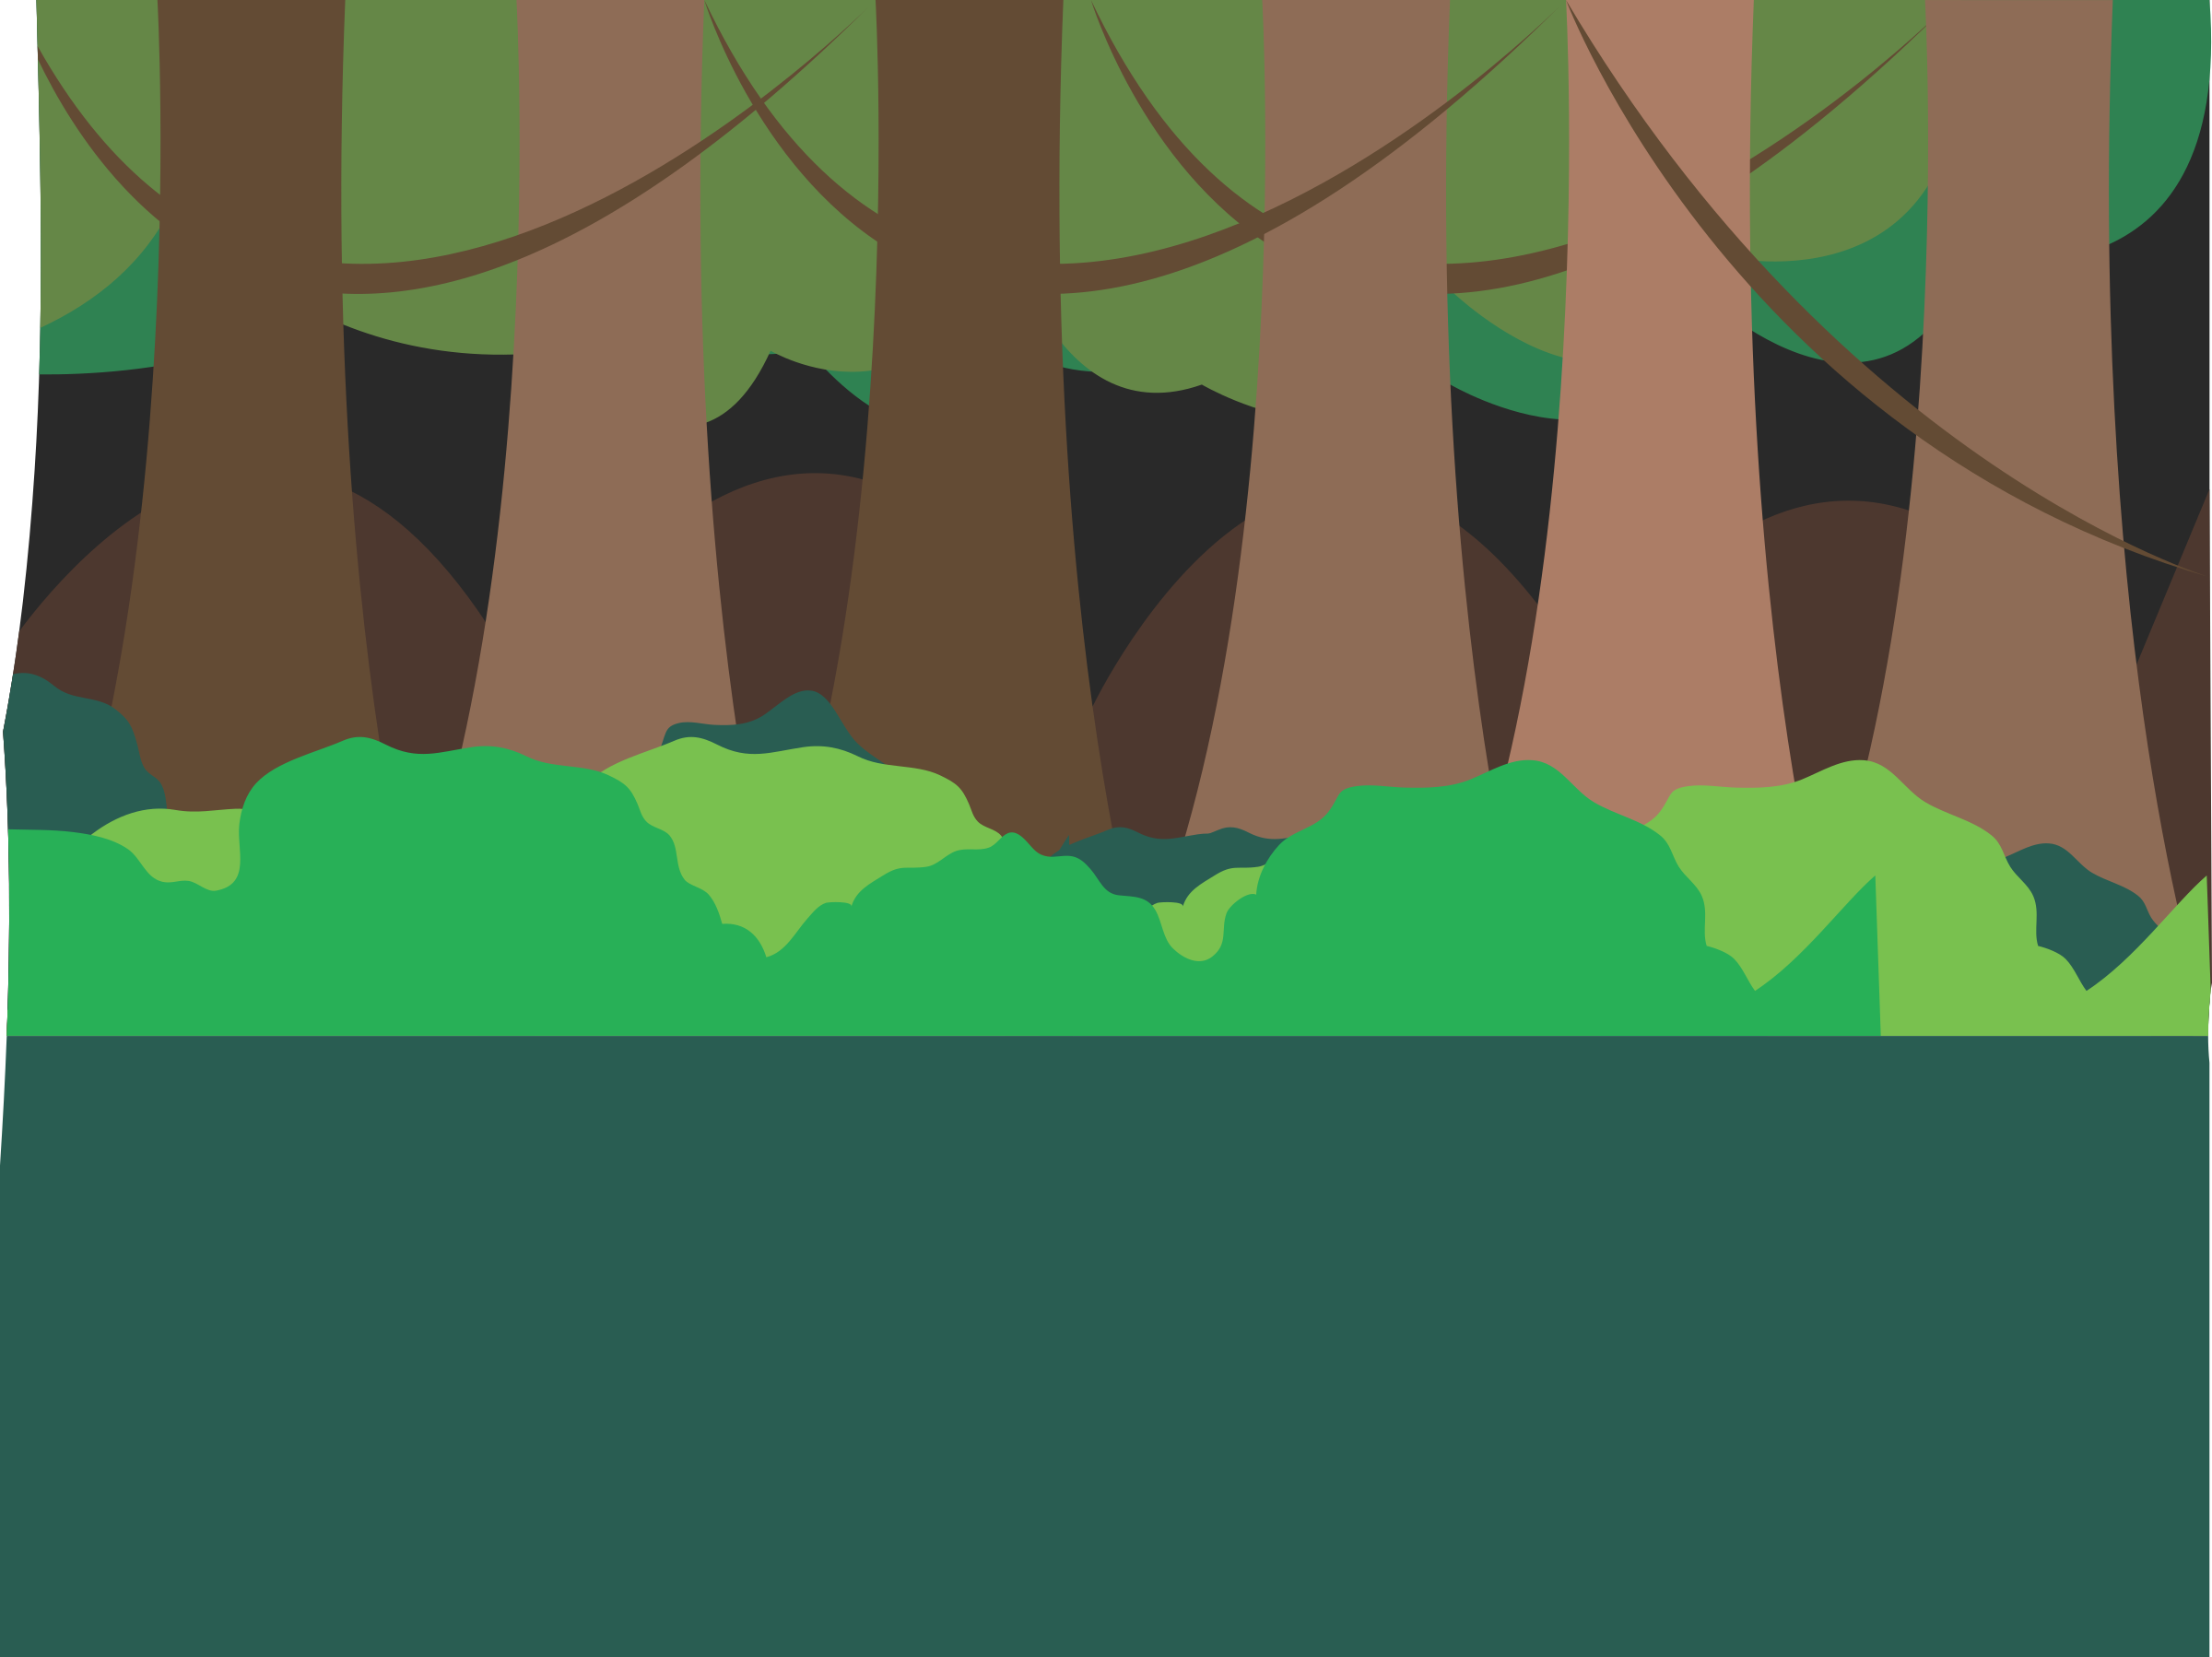 Clipart forest. Scene big image png